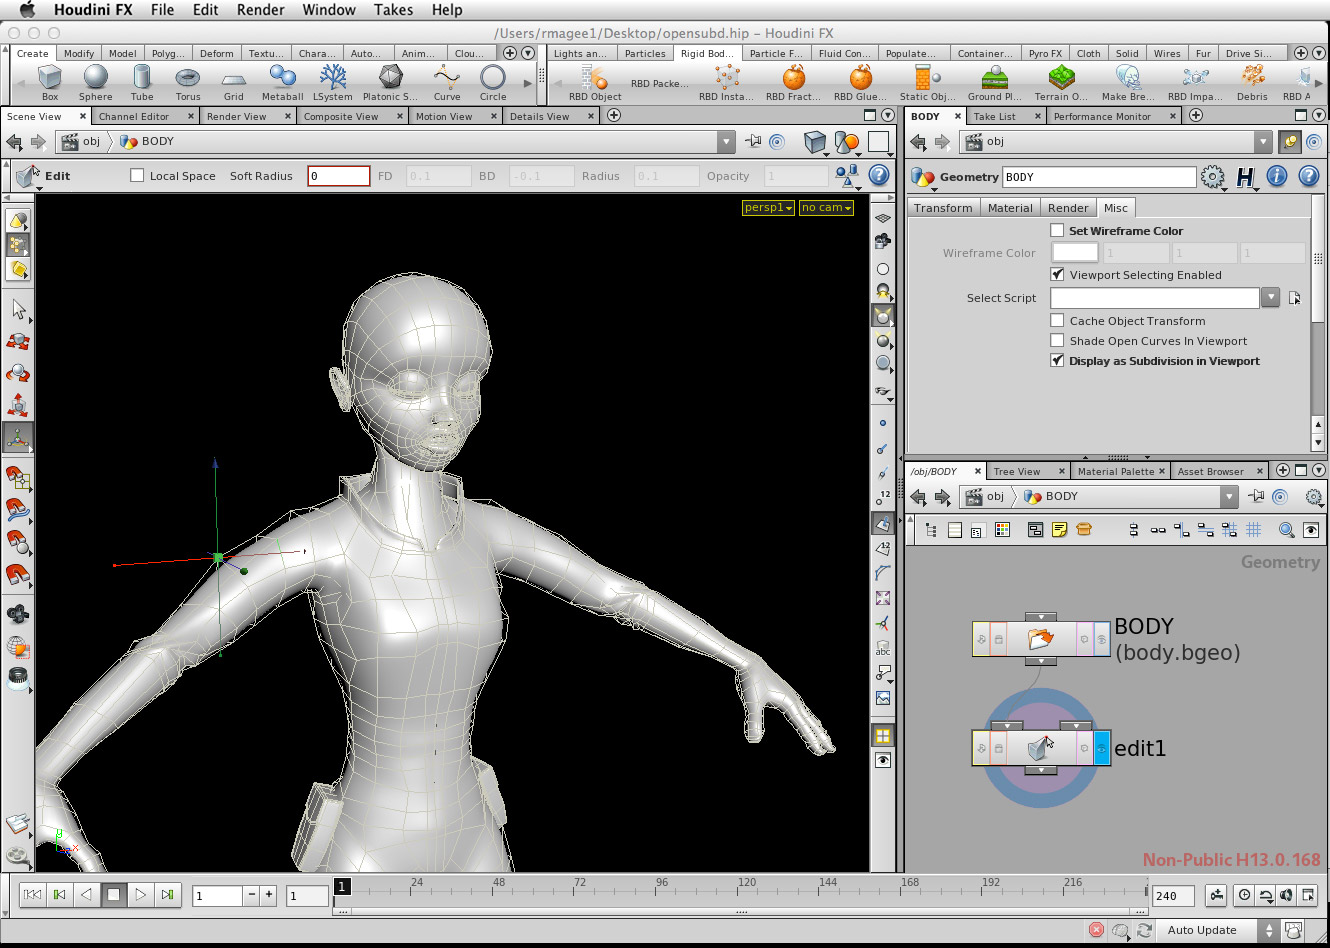 Pixar's OpenSubdiv V2: a detailed look   fxguide